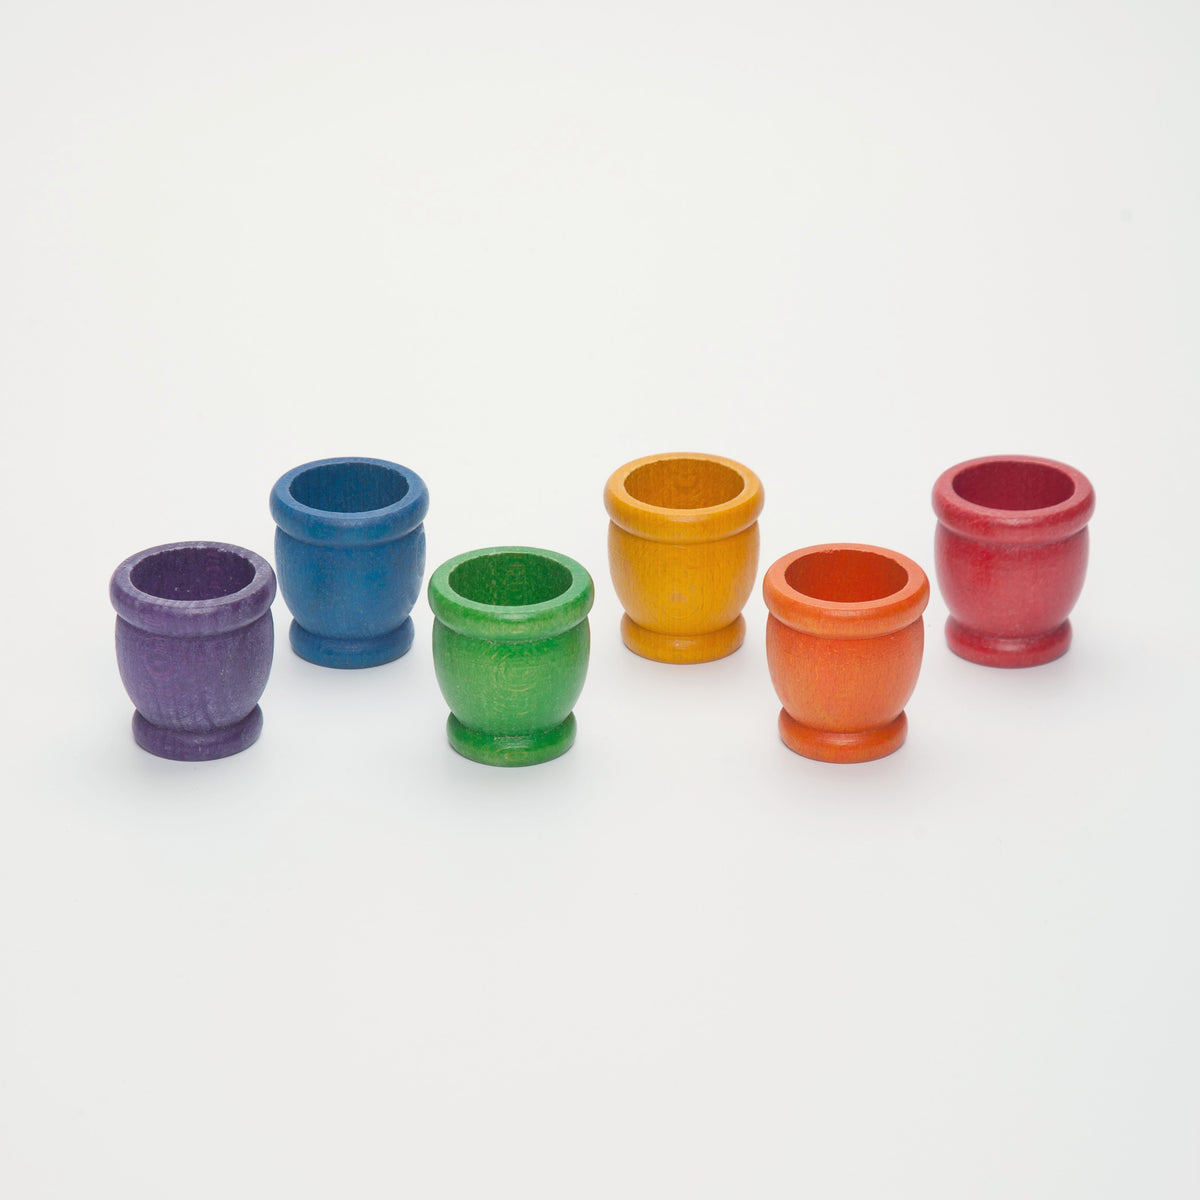 Coloured Mates | Small Set - 6 piece